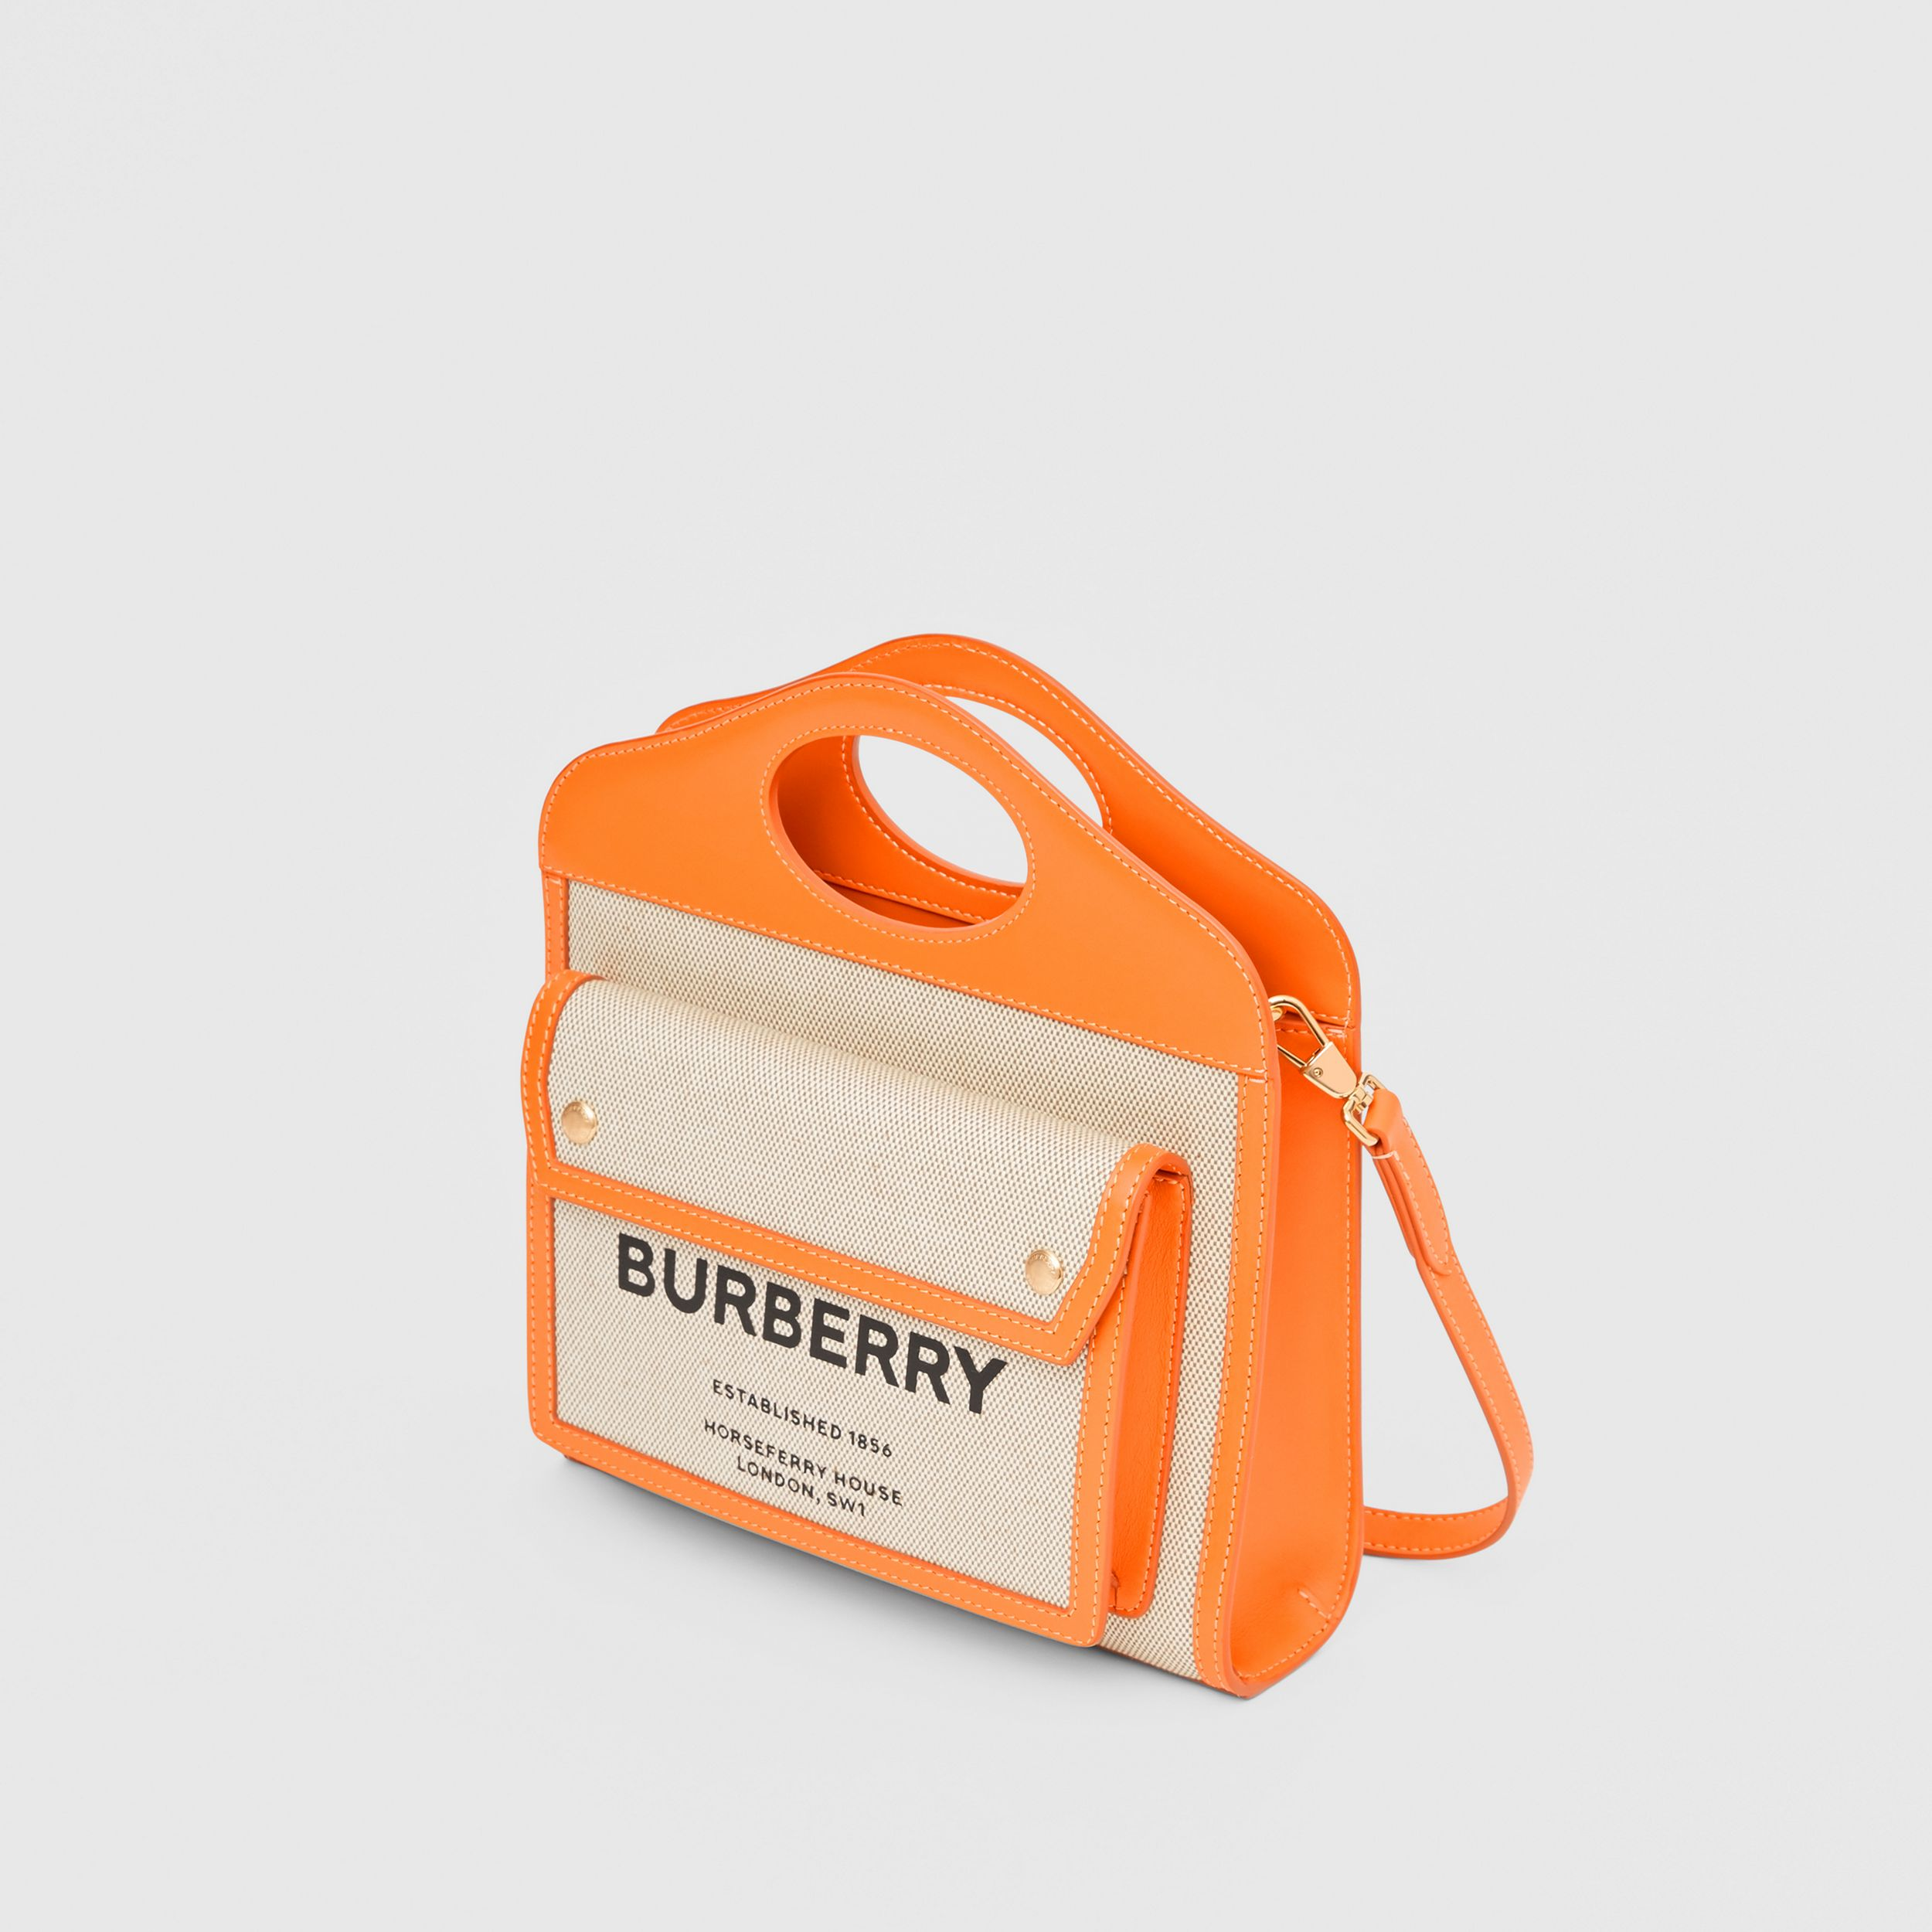 Mini Two-tone Canvas and Leather Pocket Bag in Orange - Women | Burberry United Kingdom - 4